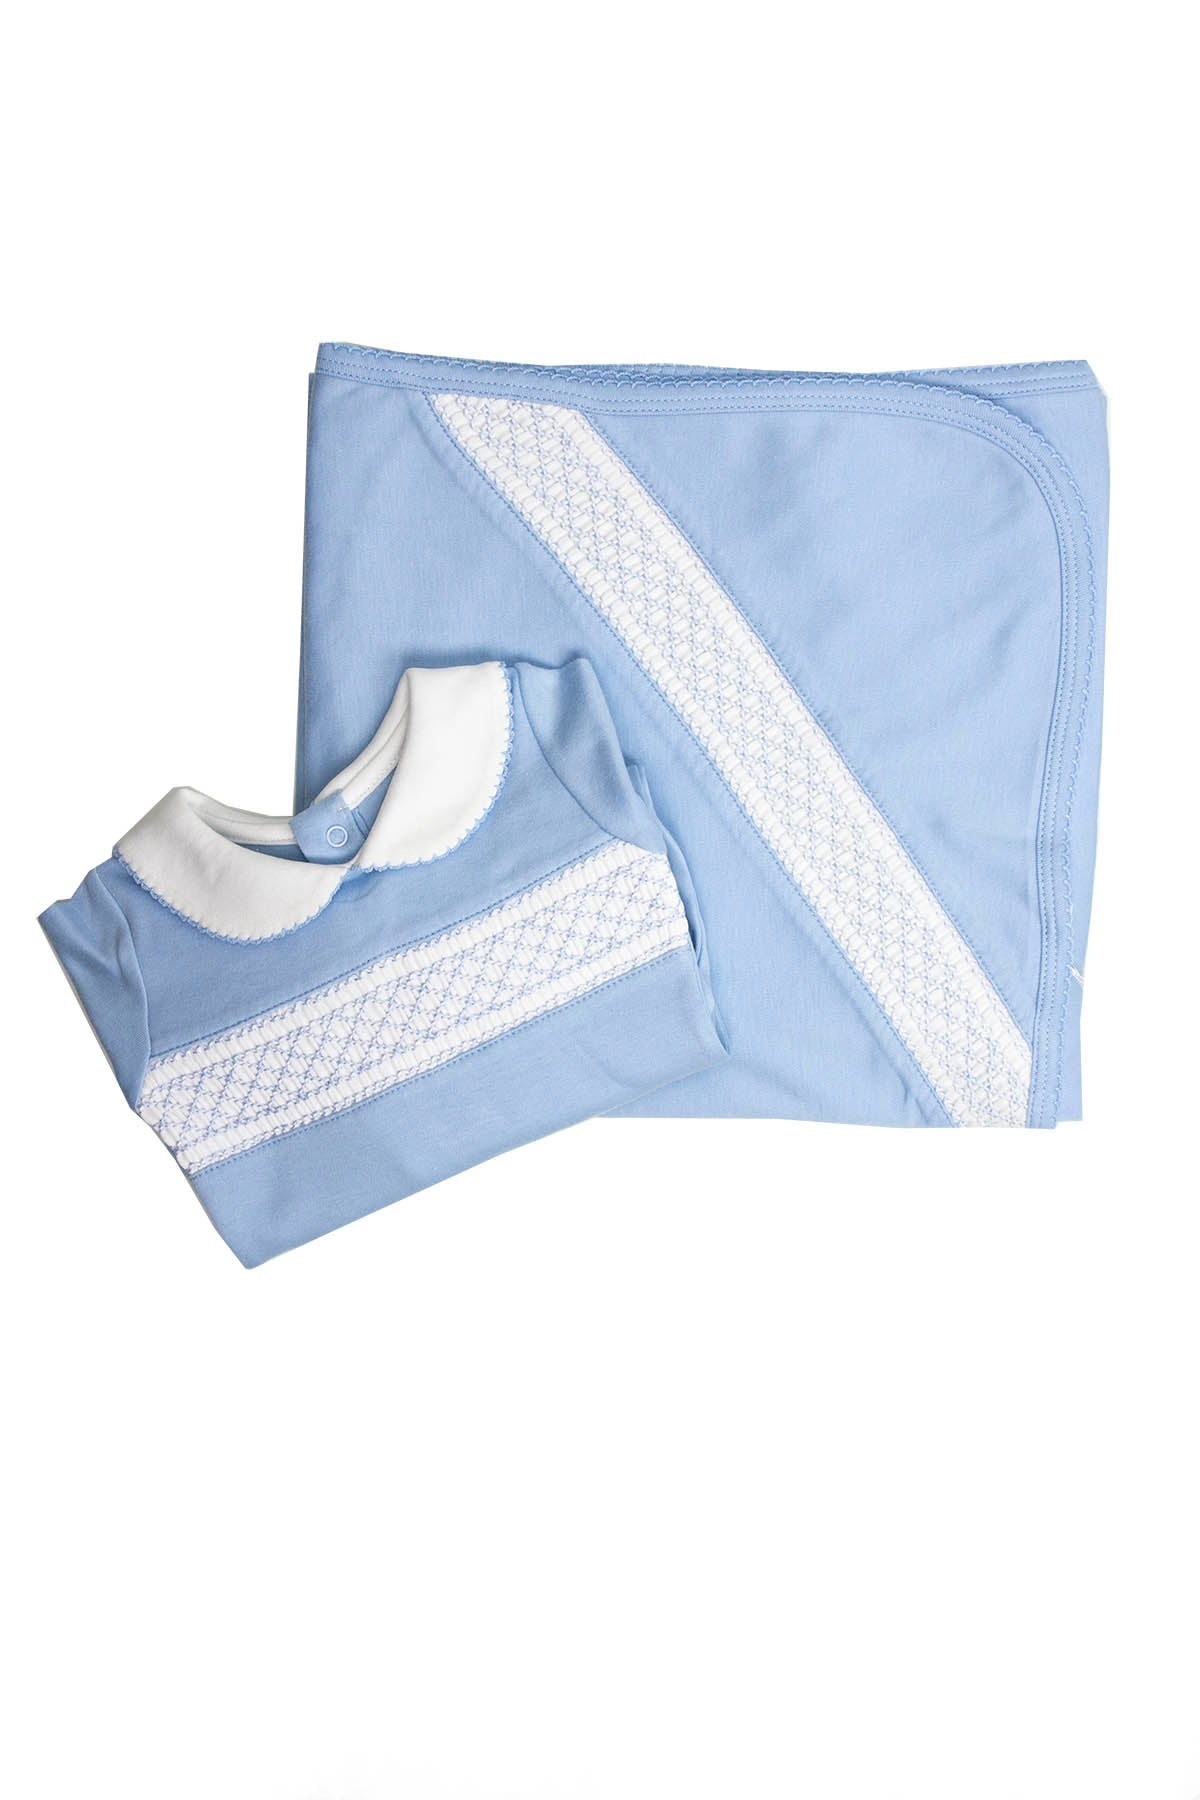 Cotton Blue Pajama with blanket White Smock Pima Cotton SET